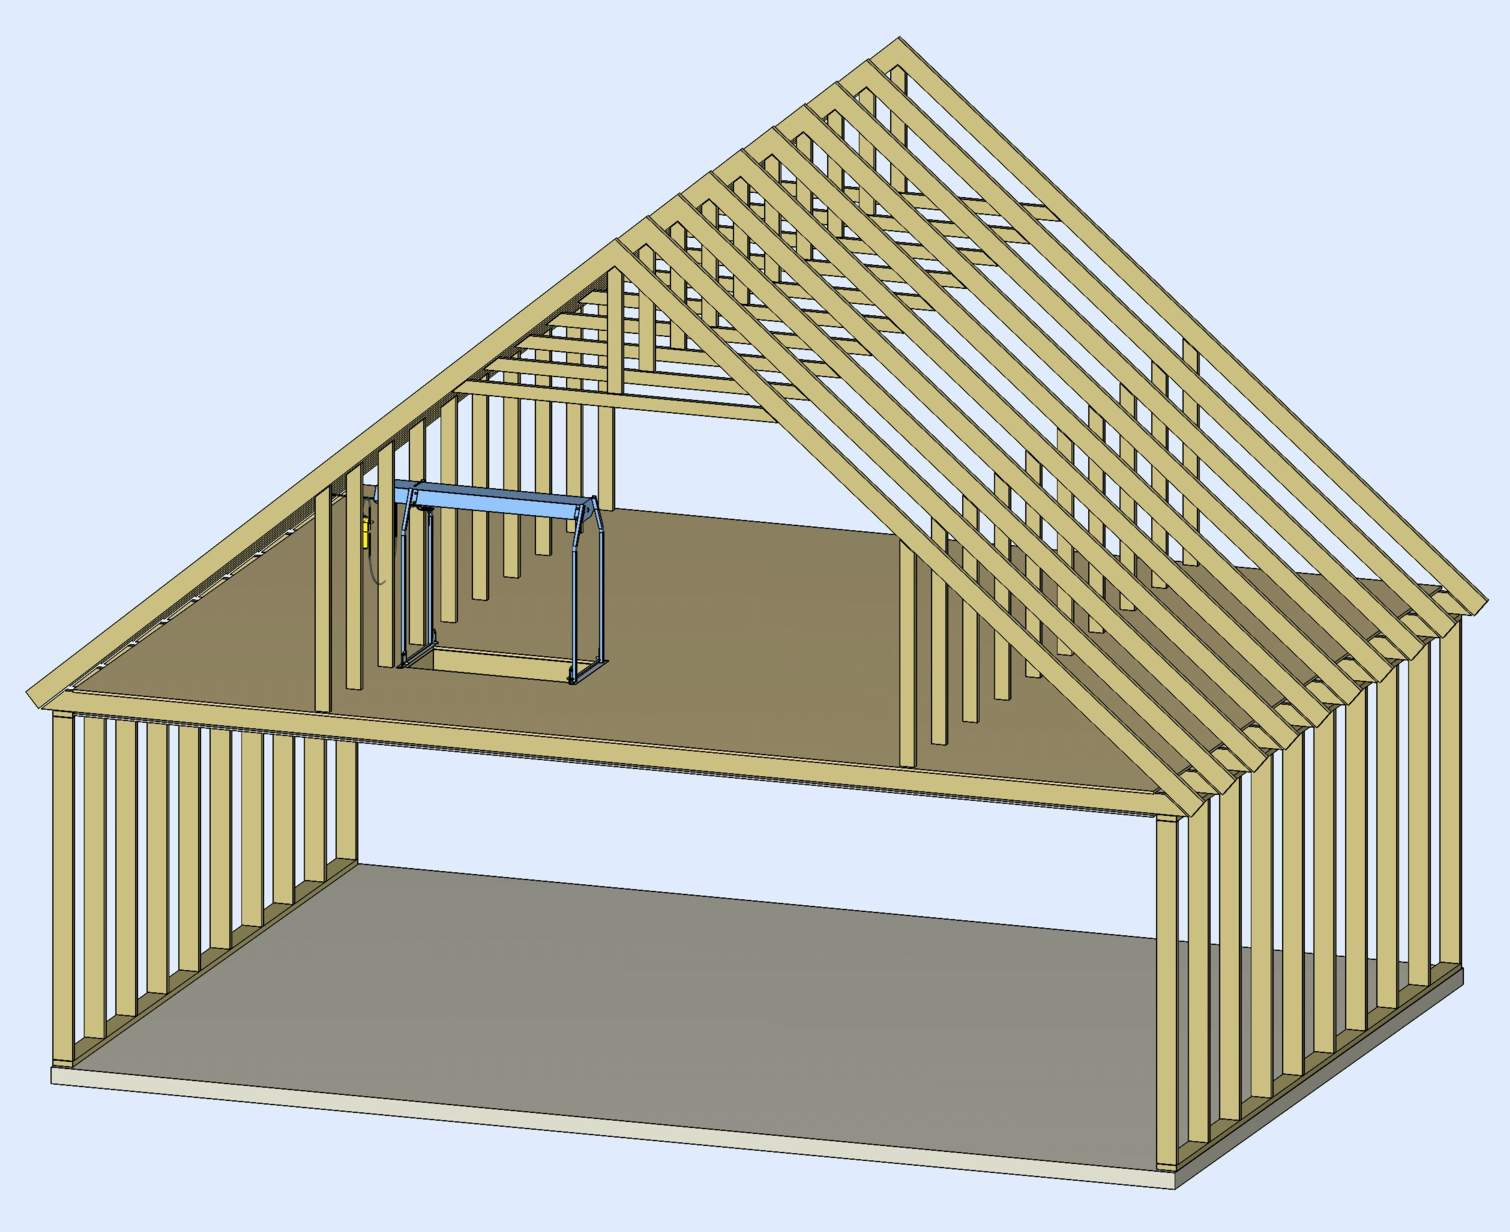 attic roof truss design calculator attic ideas